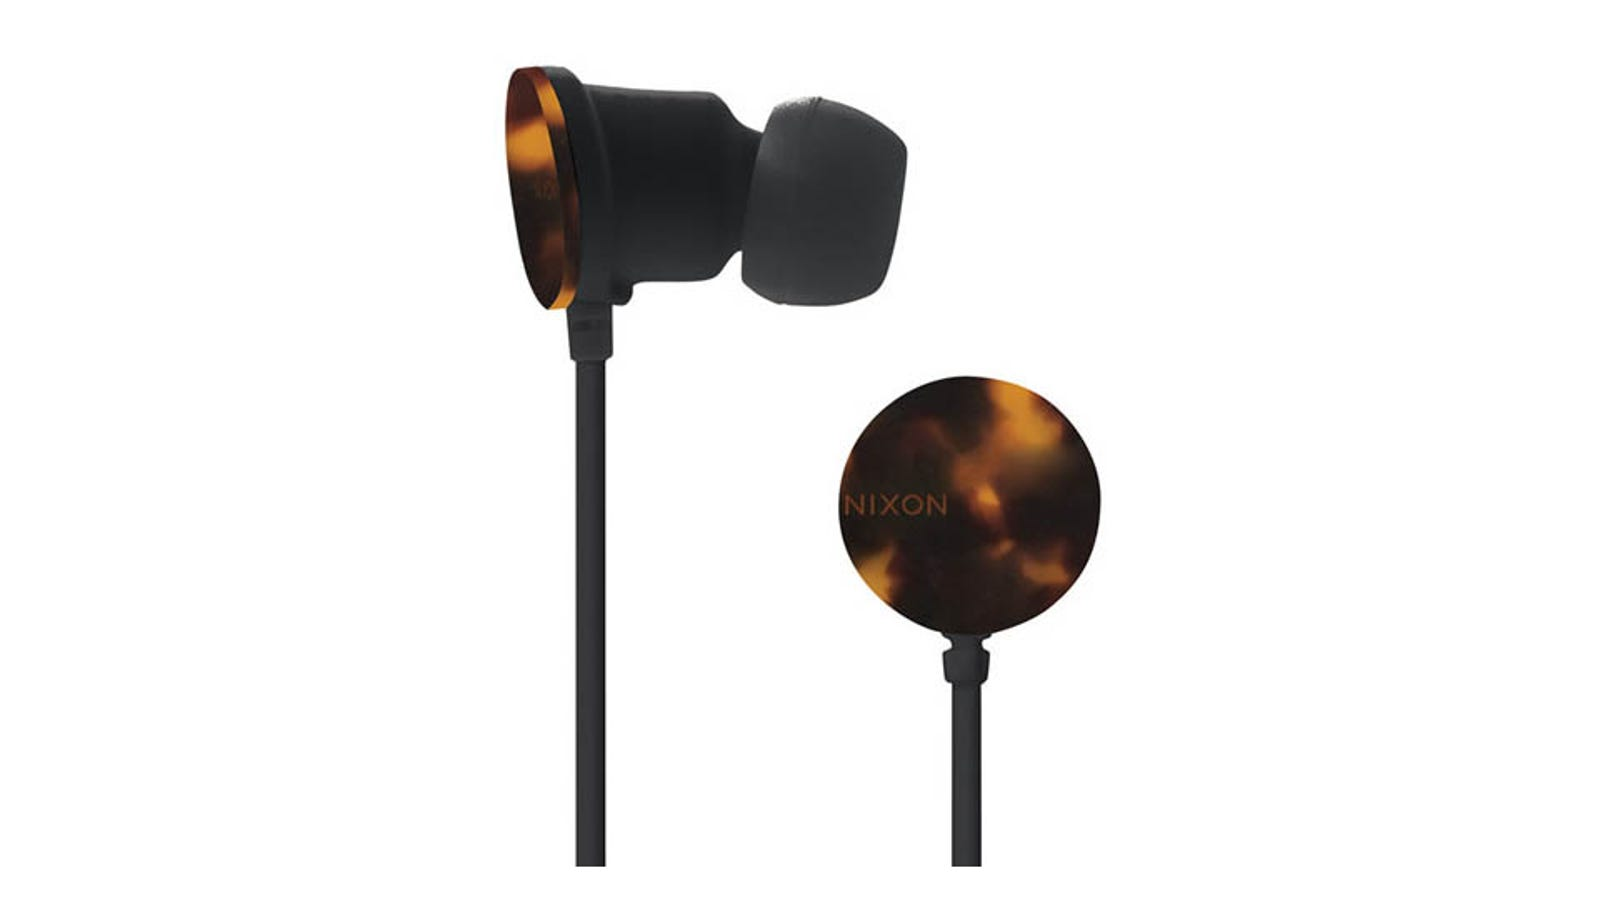 sennheiser momentum earbuds replacement - Nixon Offers Up Tortoise Shell Earbuds to Match Your Tortoise Shell Sunglasses